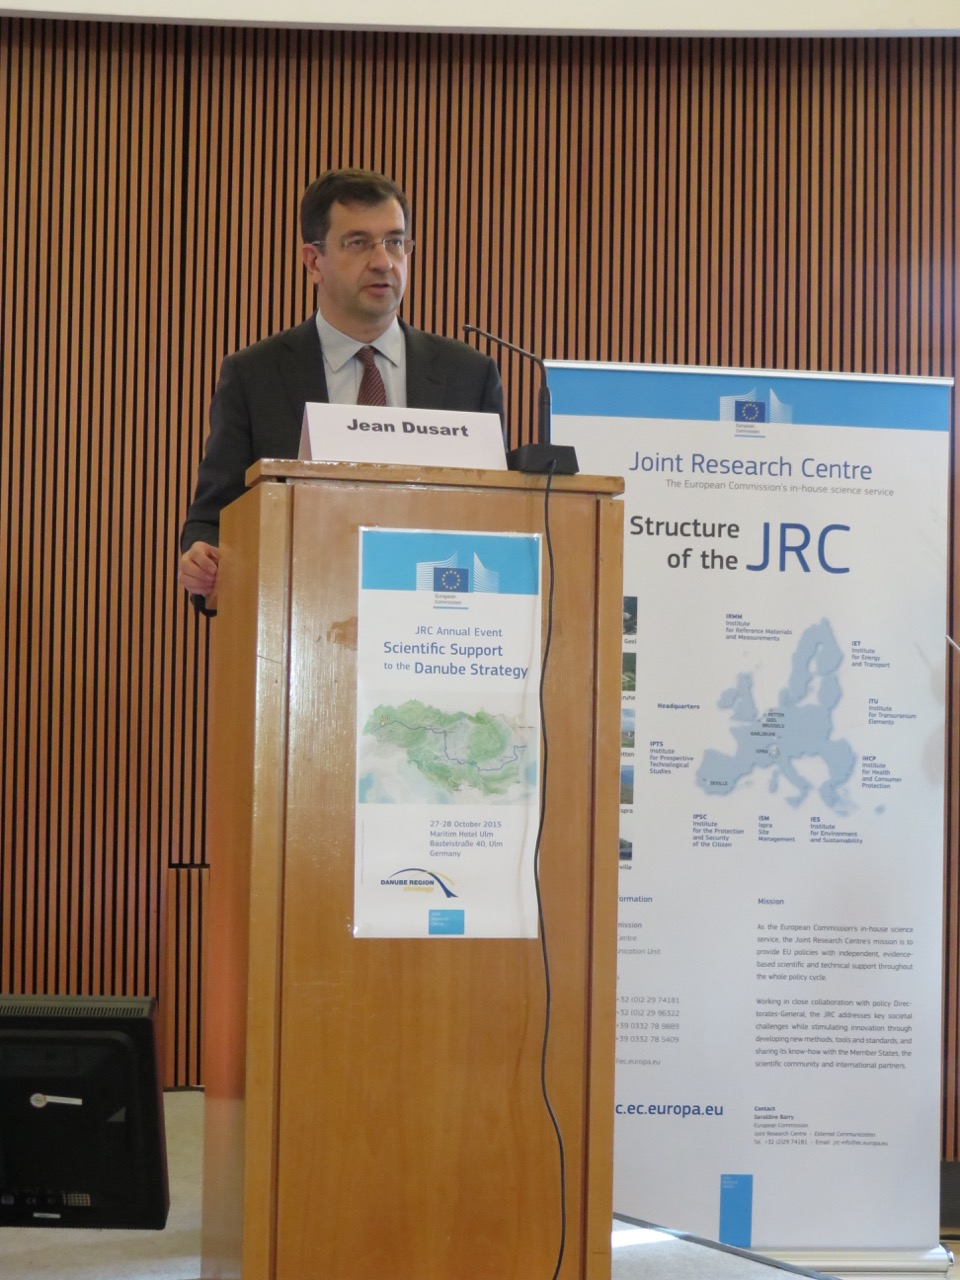 JRC Workshop on Scientific Support of the Danube Region Strategy